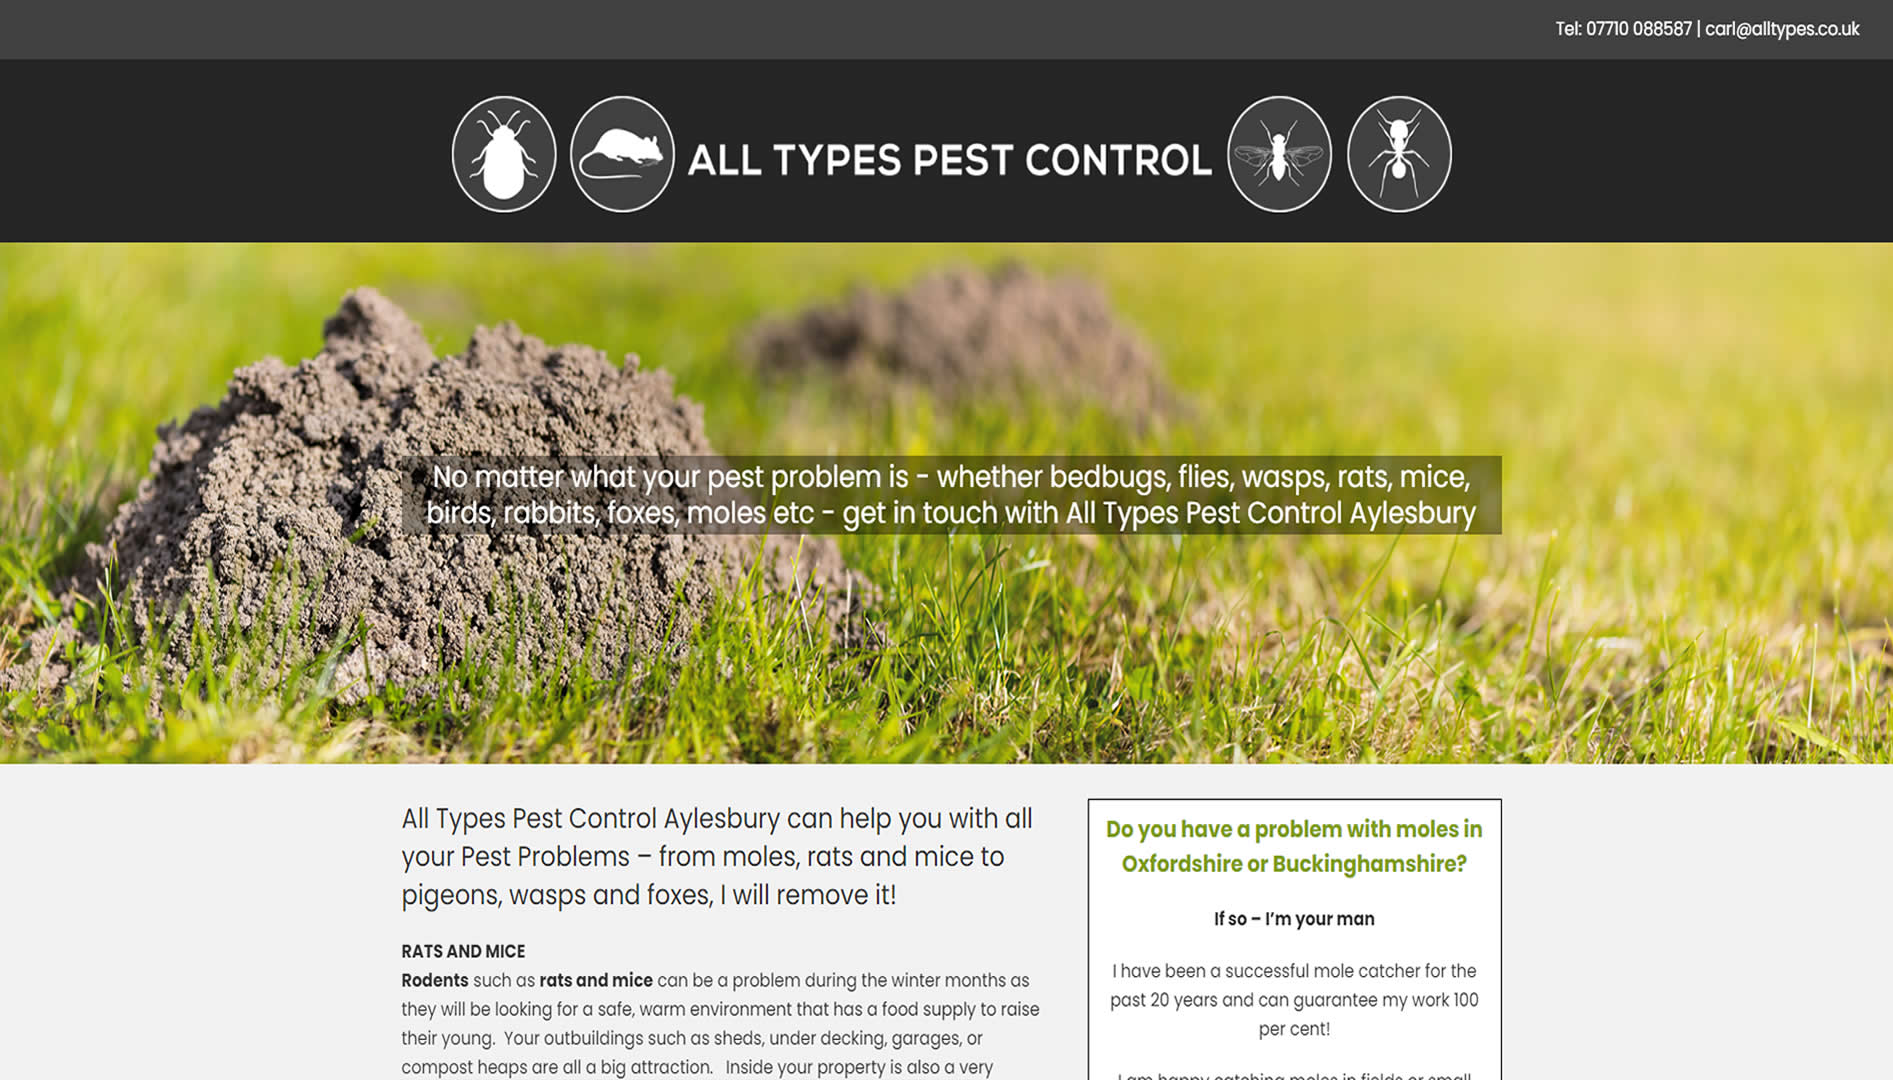 All Types Pest Control